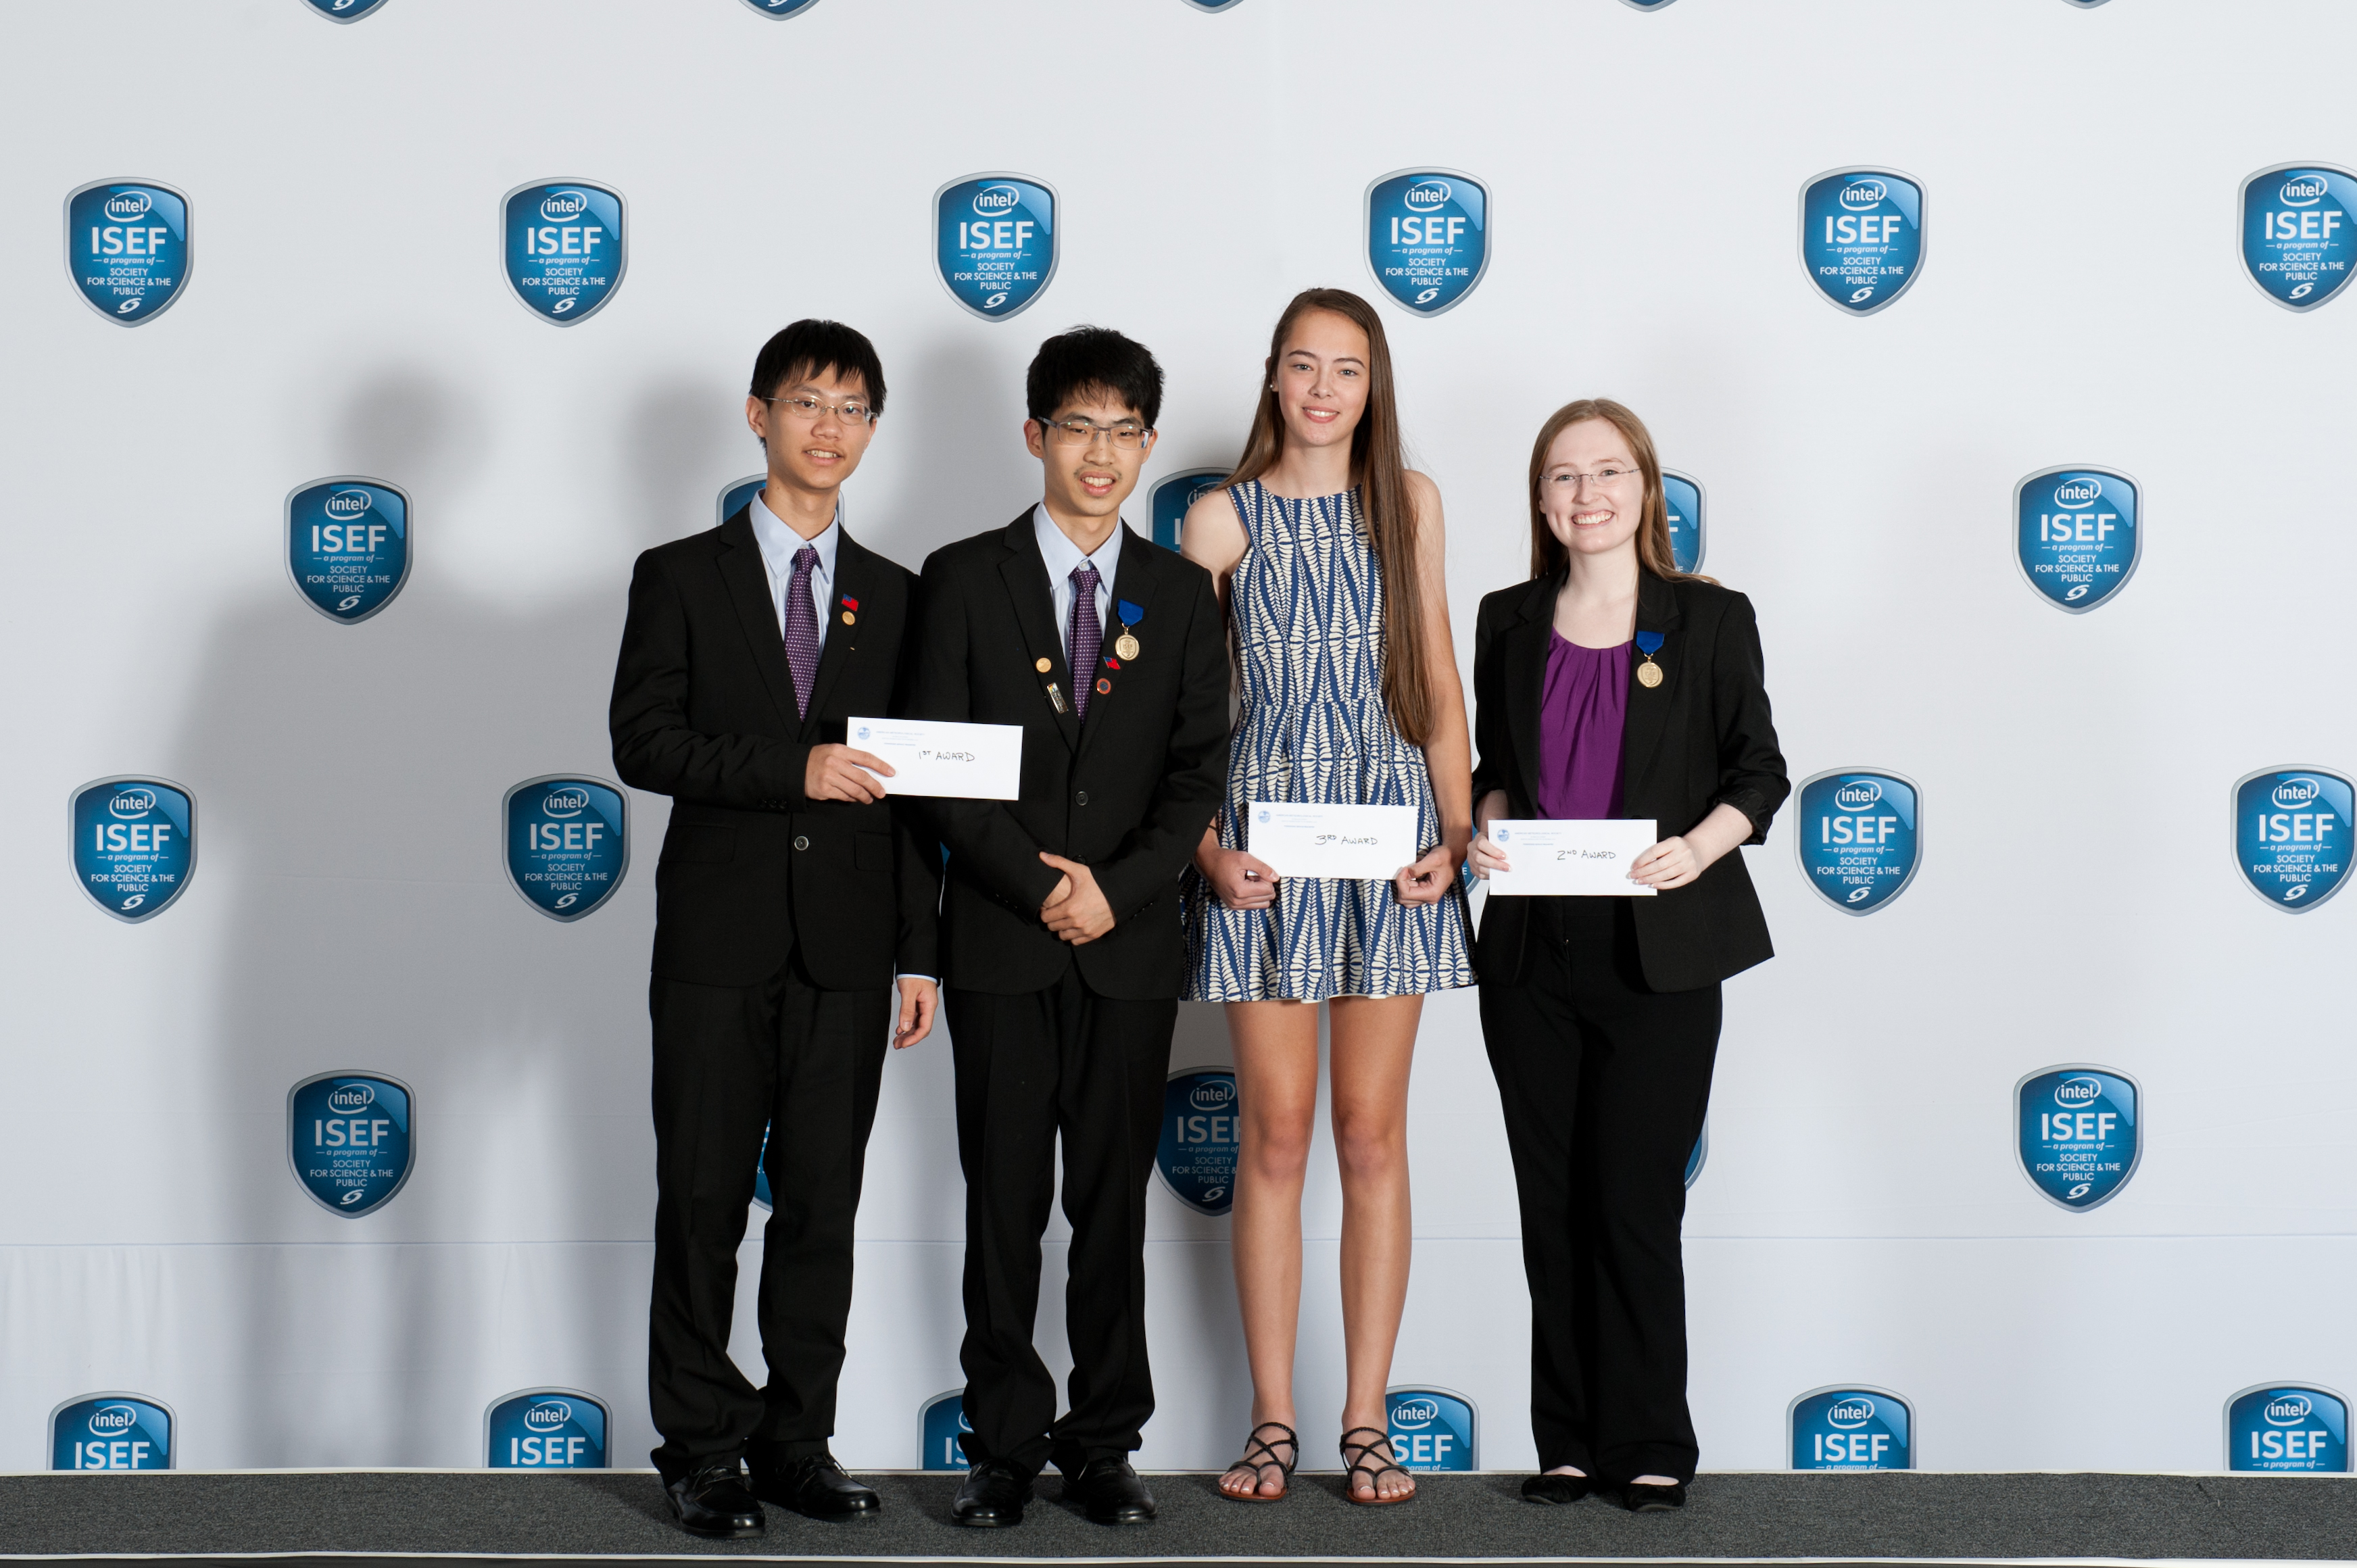 AMS award winners from Intel ISEF 2016, including Stephanie Shi-Ning Mui, Ekaterina Lebedeva, Phuong Anh Tran, Muhammad Ugur oglu Abdulla, Pei-Hsuan Chang, Qingxuan Jiang, Osvaldo J. Pagan, Dariannette Valentin.